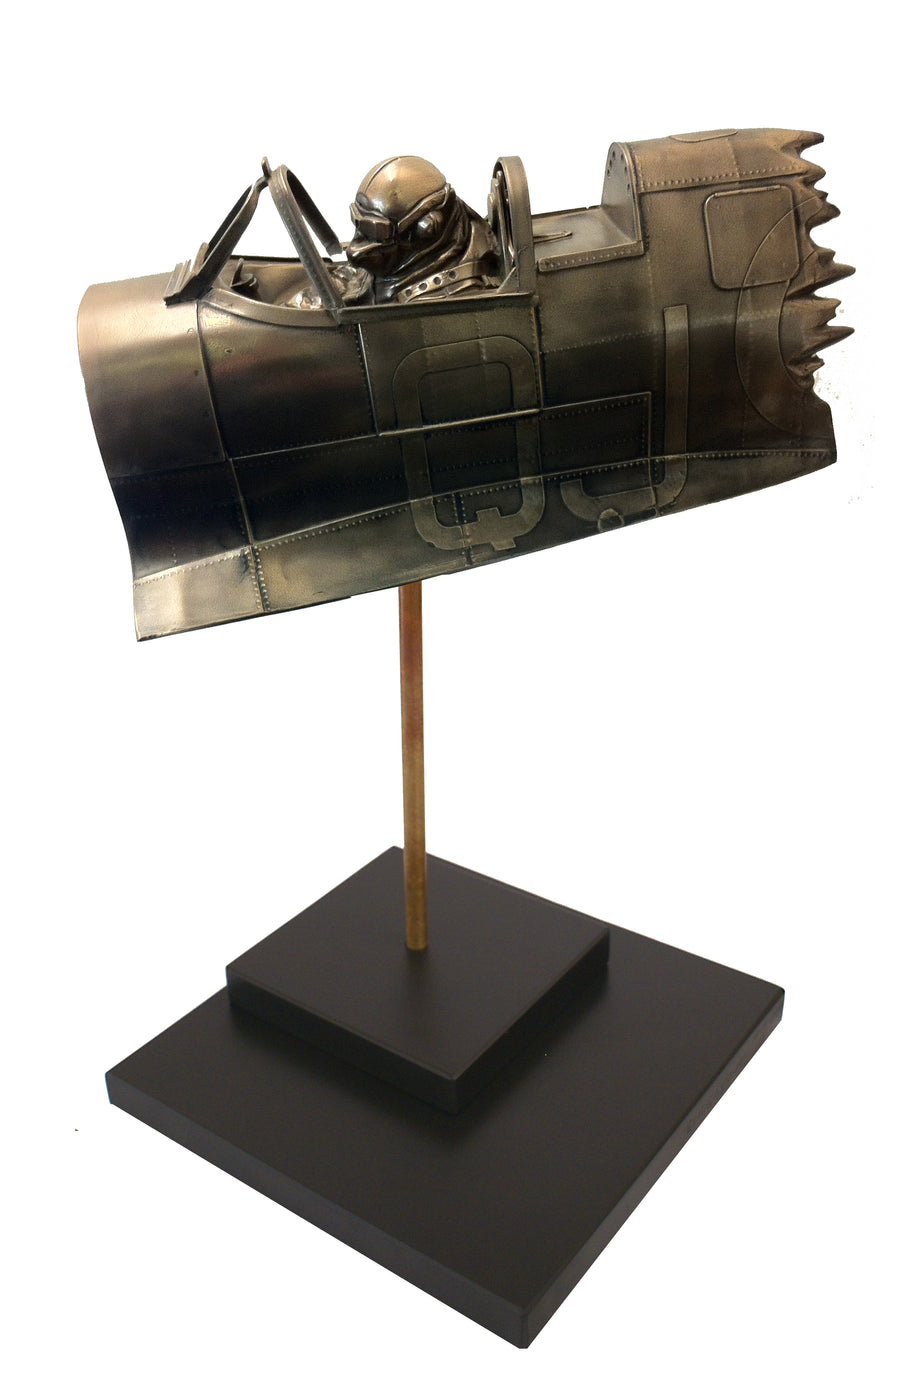 Endeavour - Cold Cast Bronze Resin Sculpture